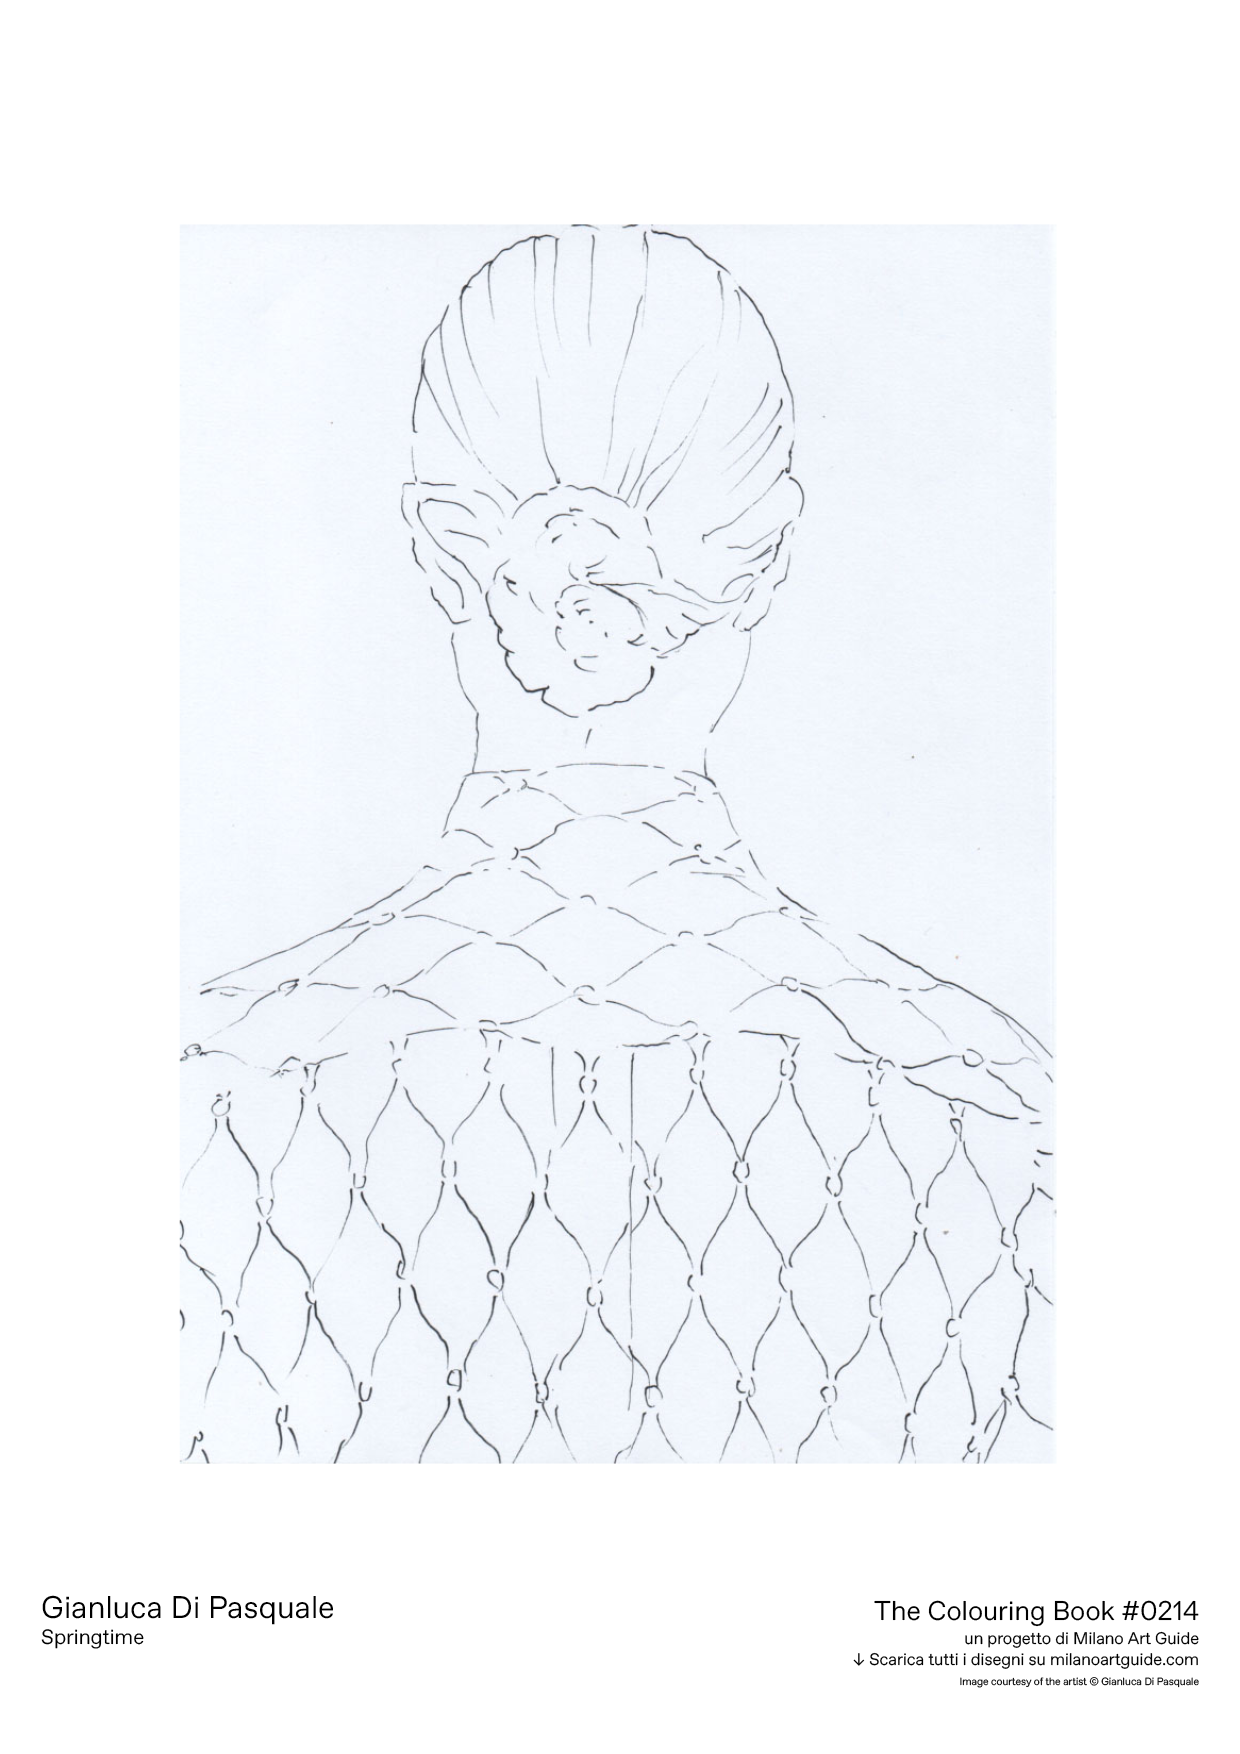 214_GianlucaDiPasquale_THECOLOURINGBOOK_MILANOARTGUIDE.png